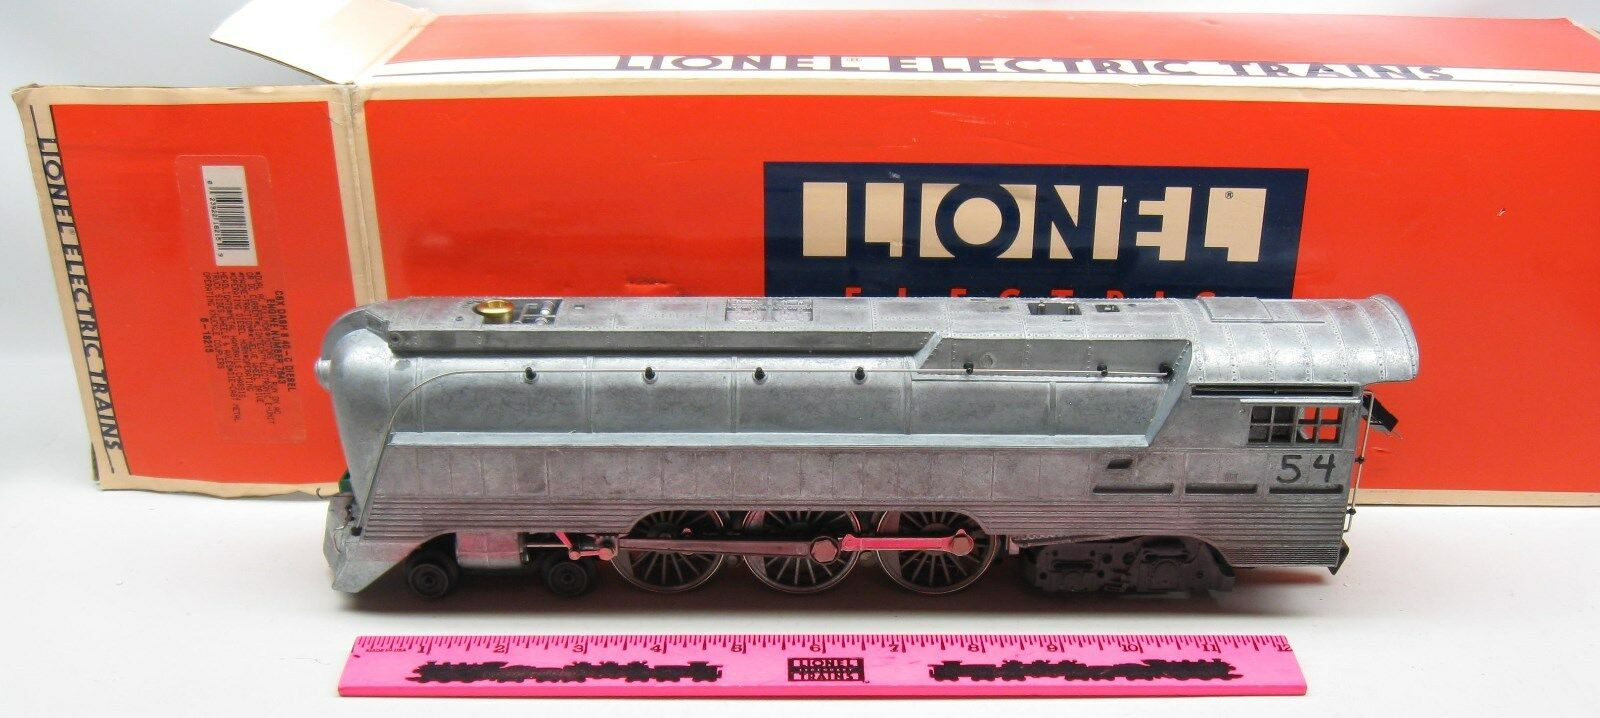 Lionel predotype Chesapeake & Ohio Hudson 4-6-4 Locomotive 18043